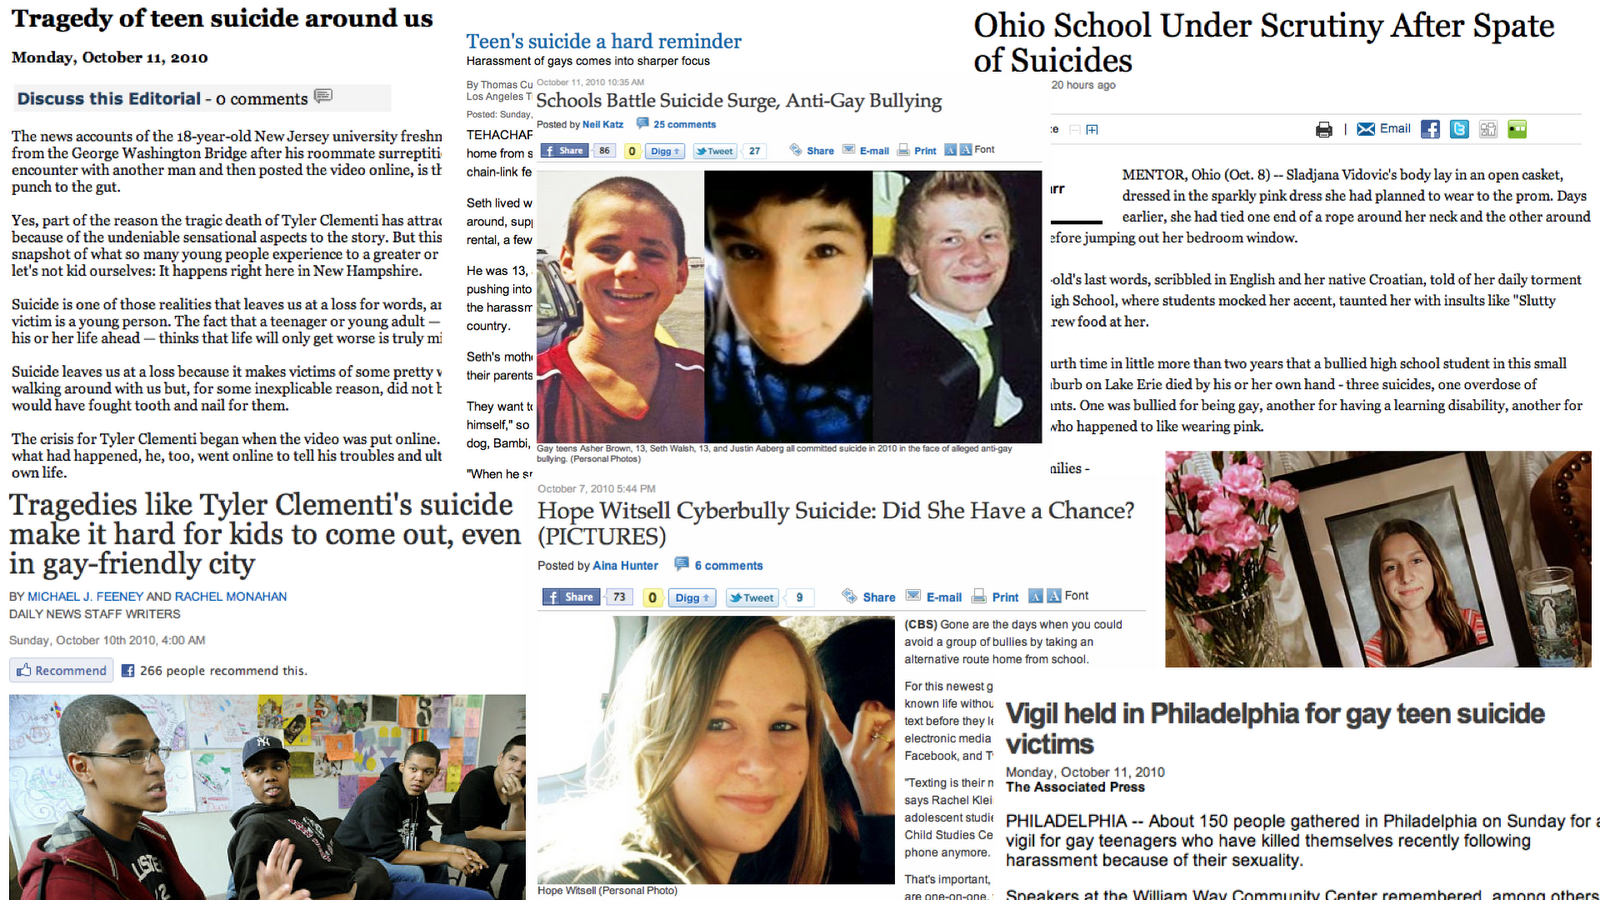 Suicide+Collage.004 Kin outraged, distraught over teen's cyber suicide